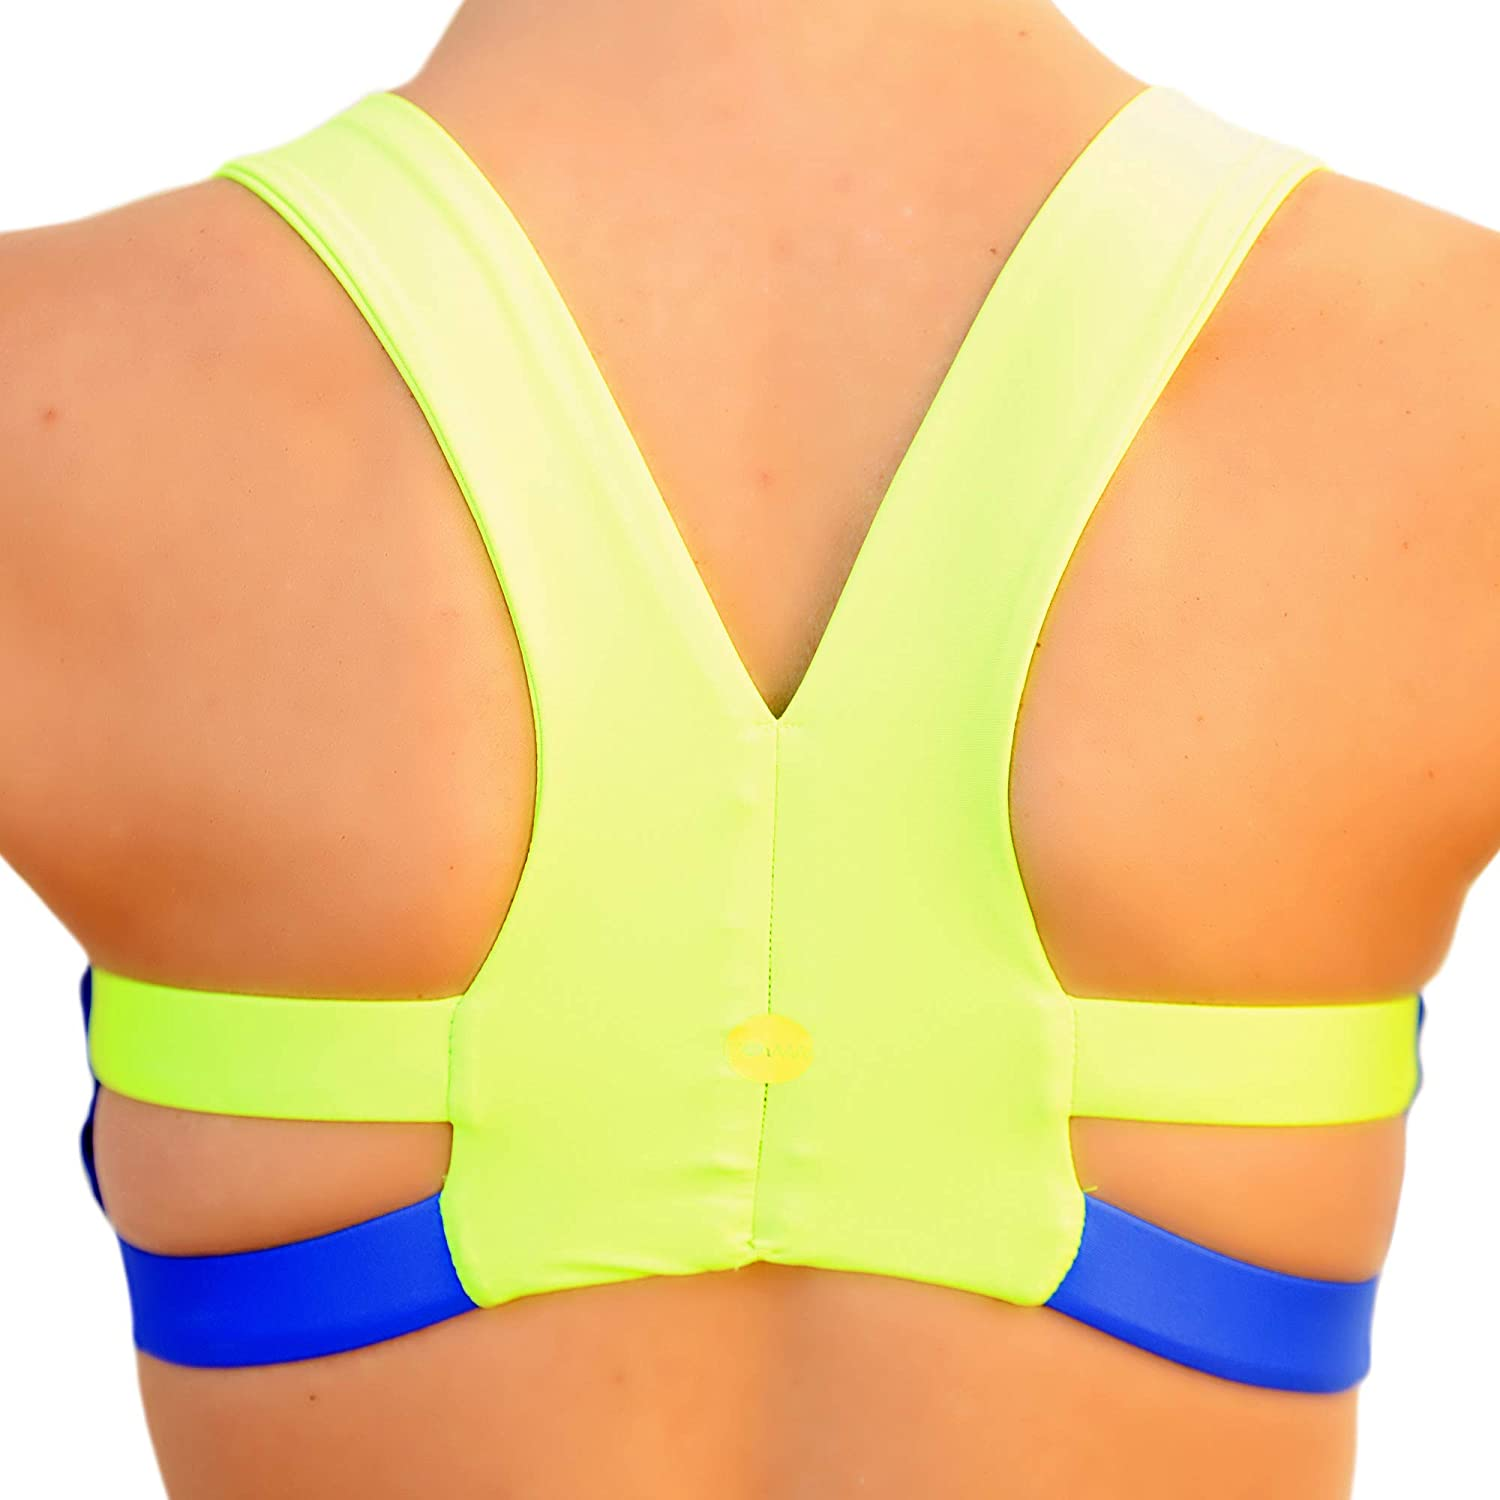 POWWFUL Sports Bra The Mag Mile Chafe-Free Straps Lightweight Soft Technical Fabric Medium Impact Support,